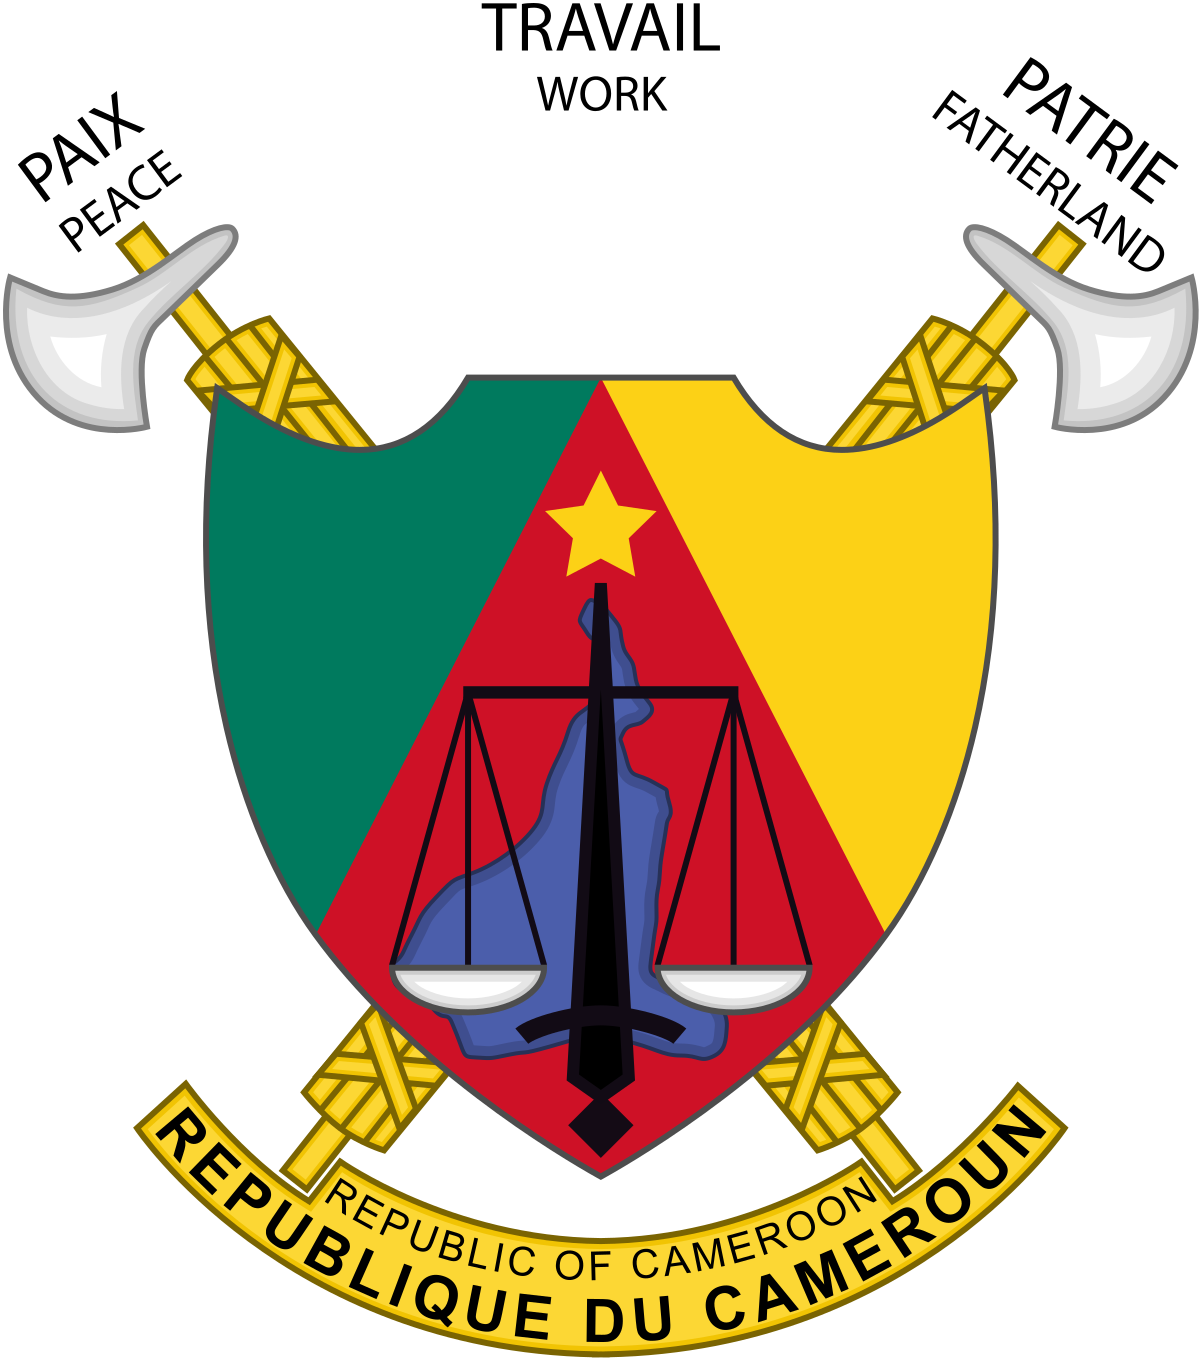 1990 civil rights clipart png transparent download Human rights in Cameroon - Wikipedia png transparent download